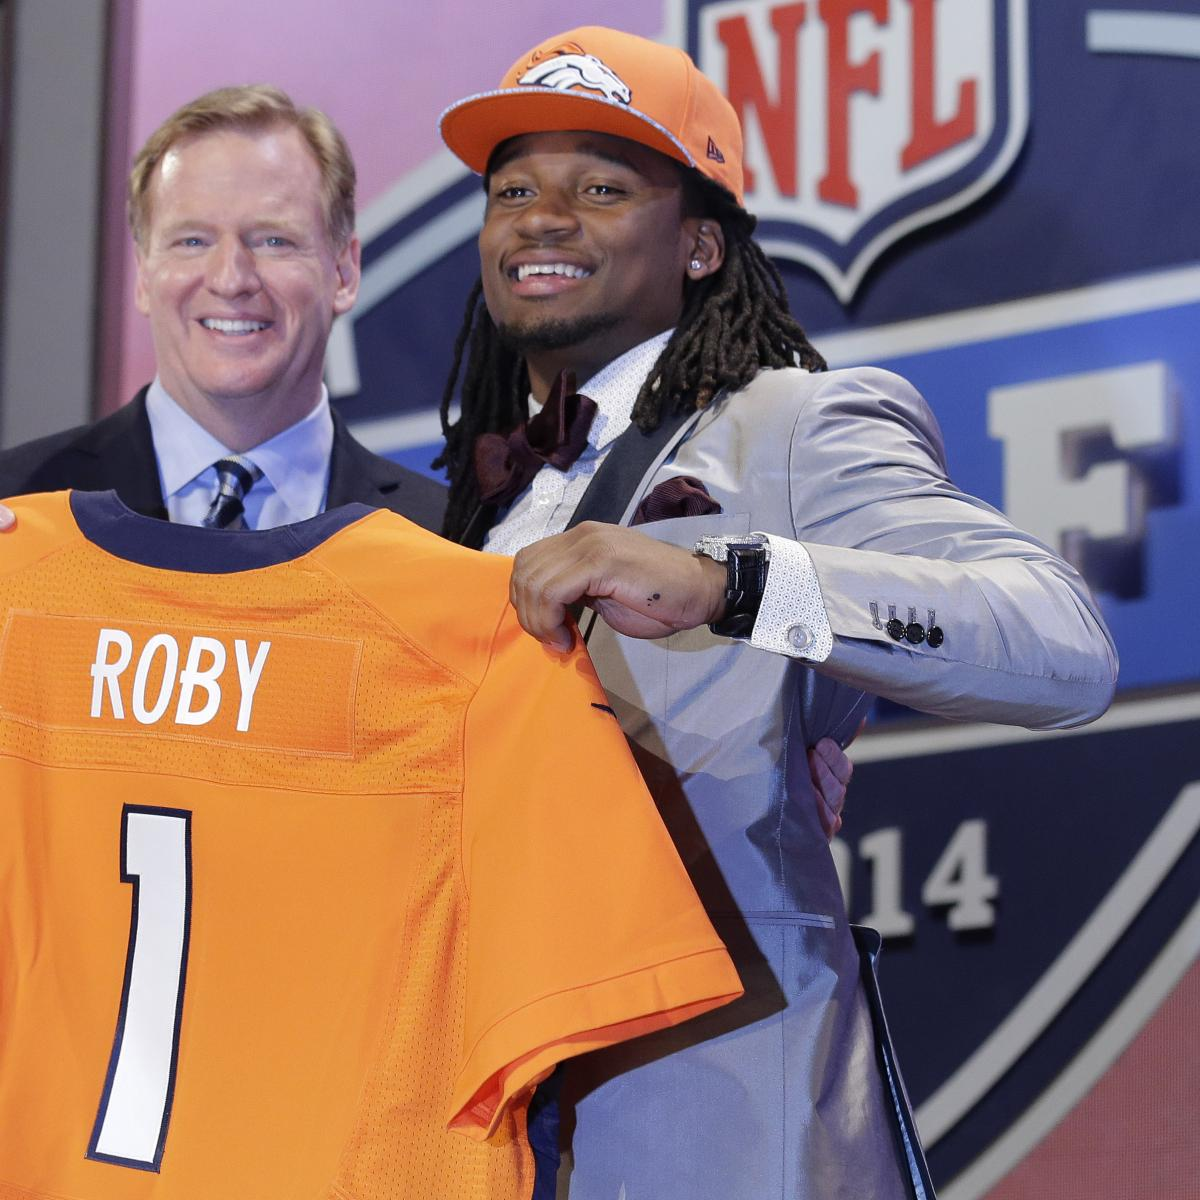 Former Broncos Player Arrested: Bradley Roby To Broncos: How Does CB Fit With Denver